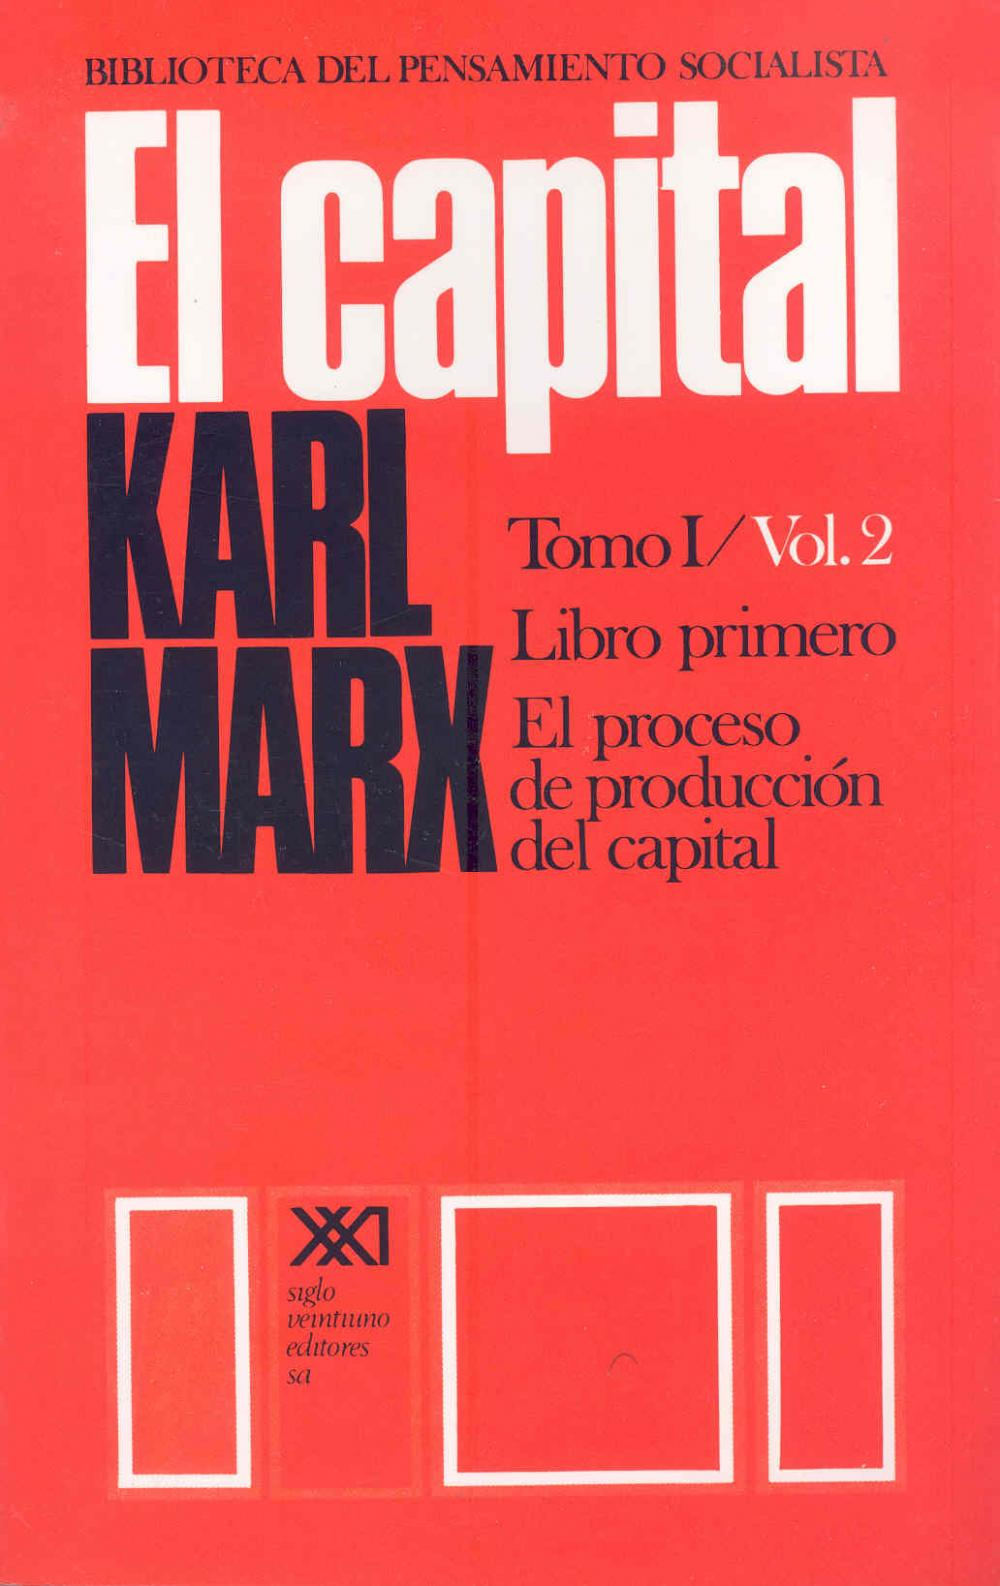 El capital. Tomo I/Vol. 2